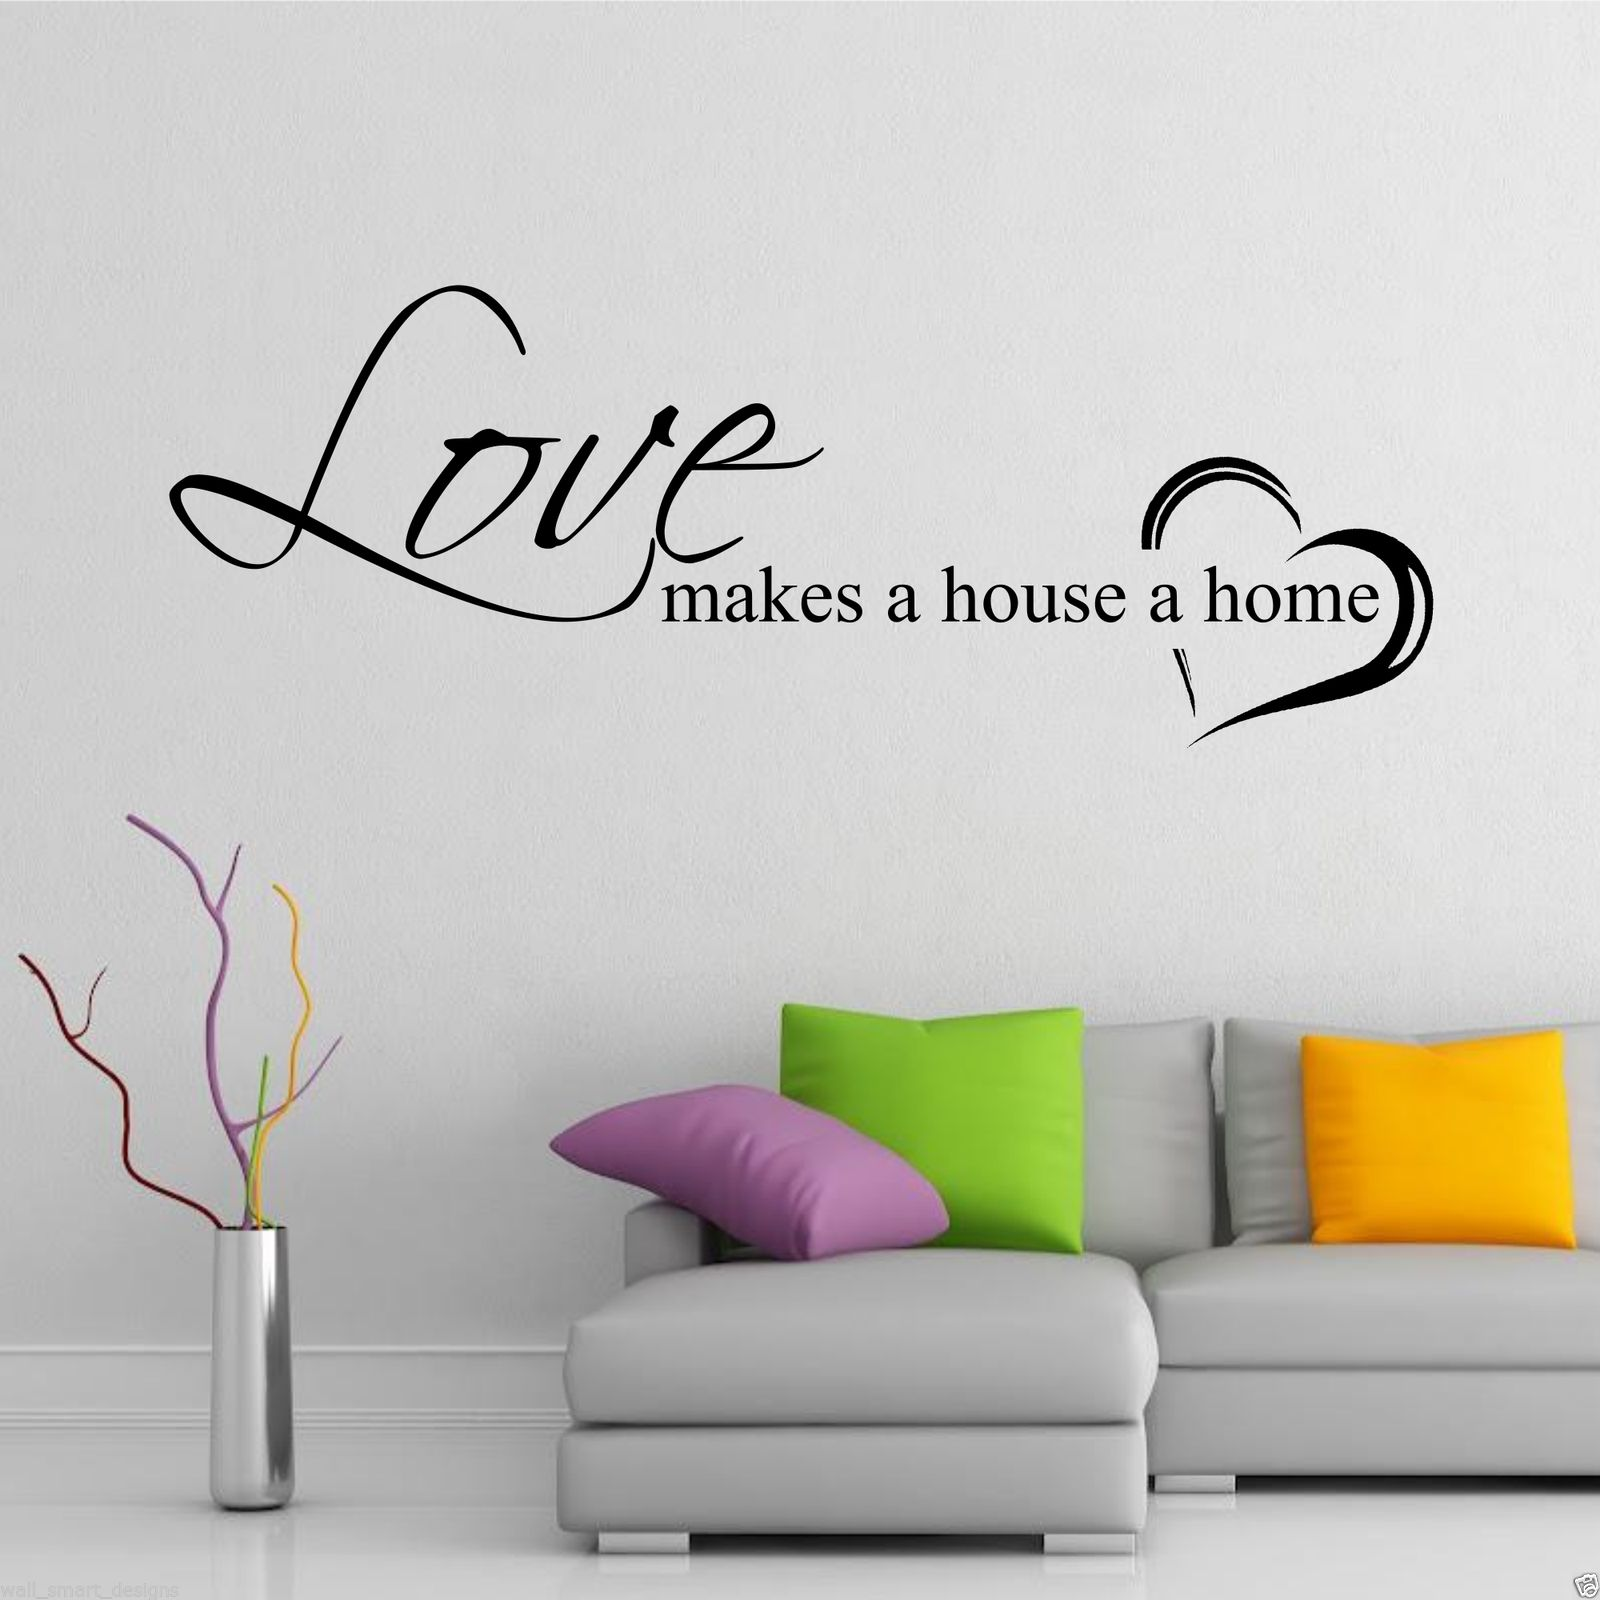 Home love family wall art sticker quote decal mural transfer home love family wall art sticker quote decal amipublicfo Gallery